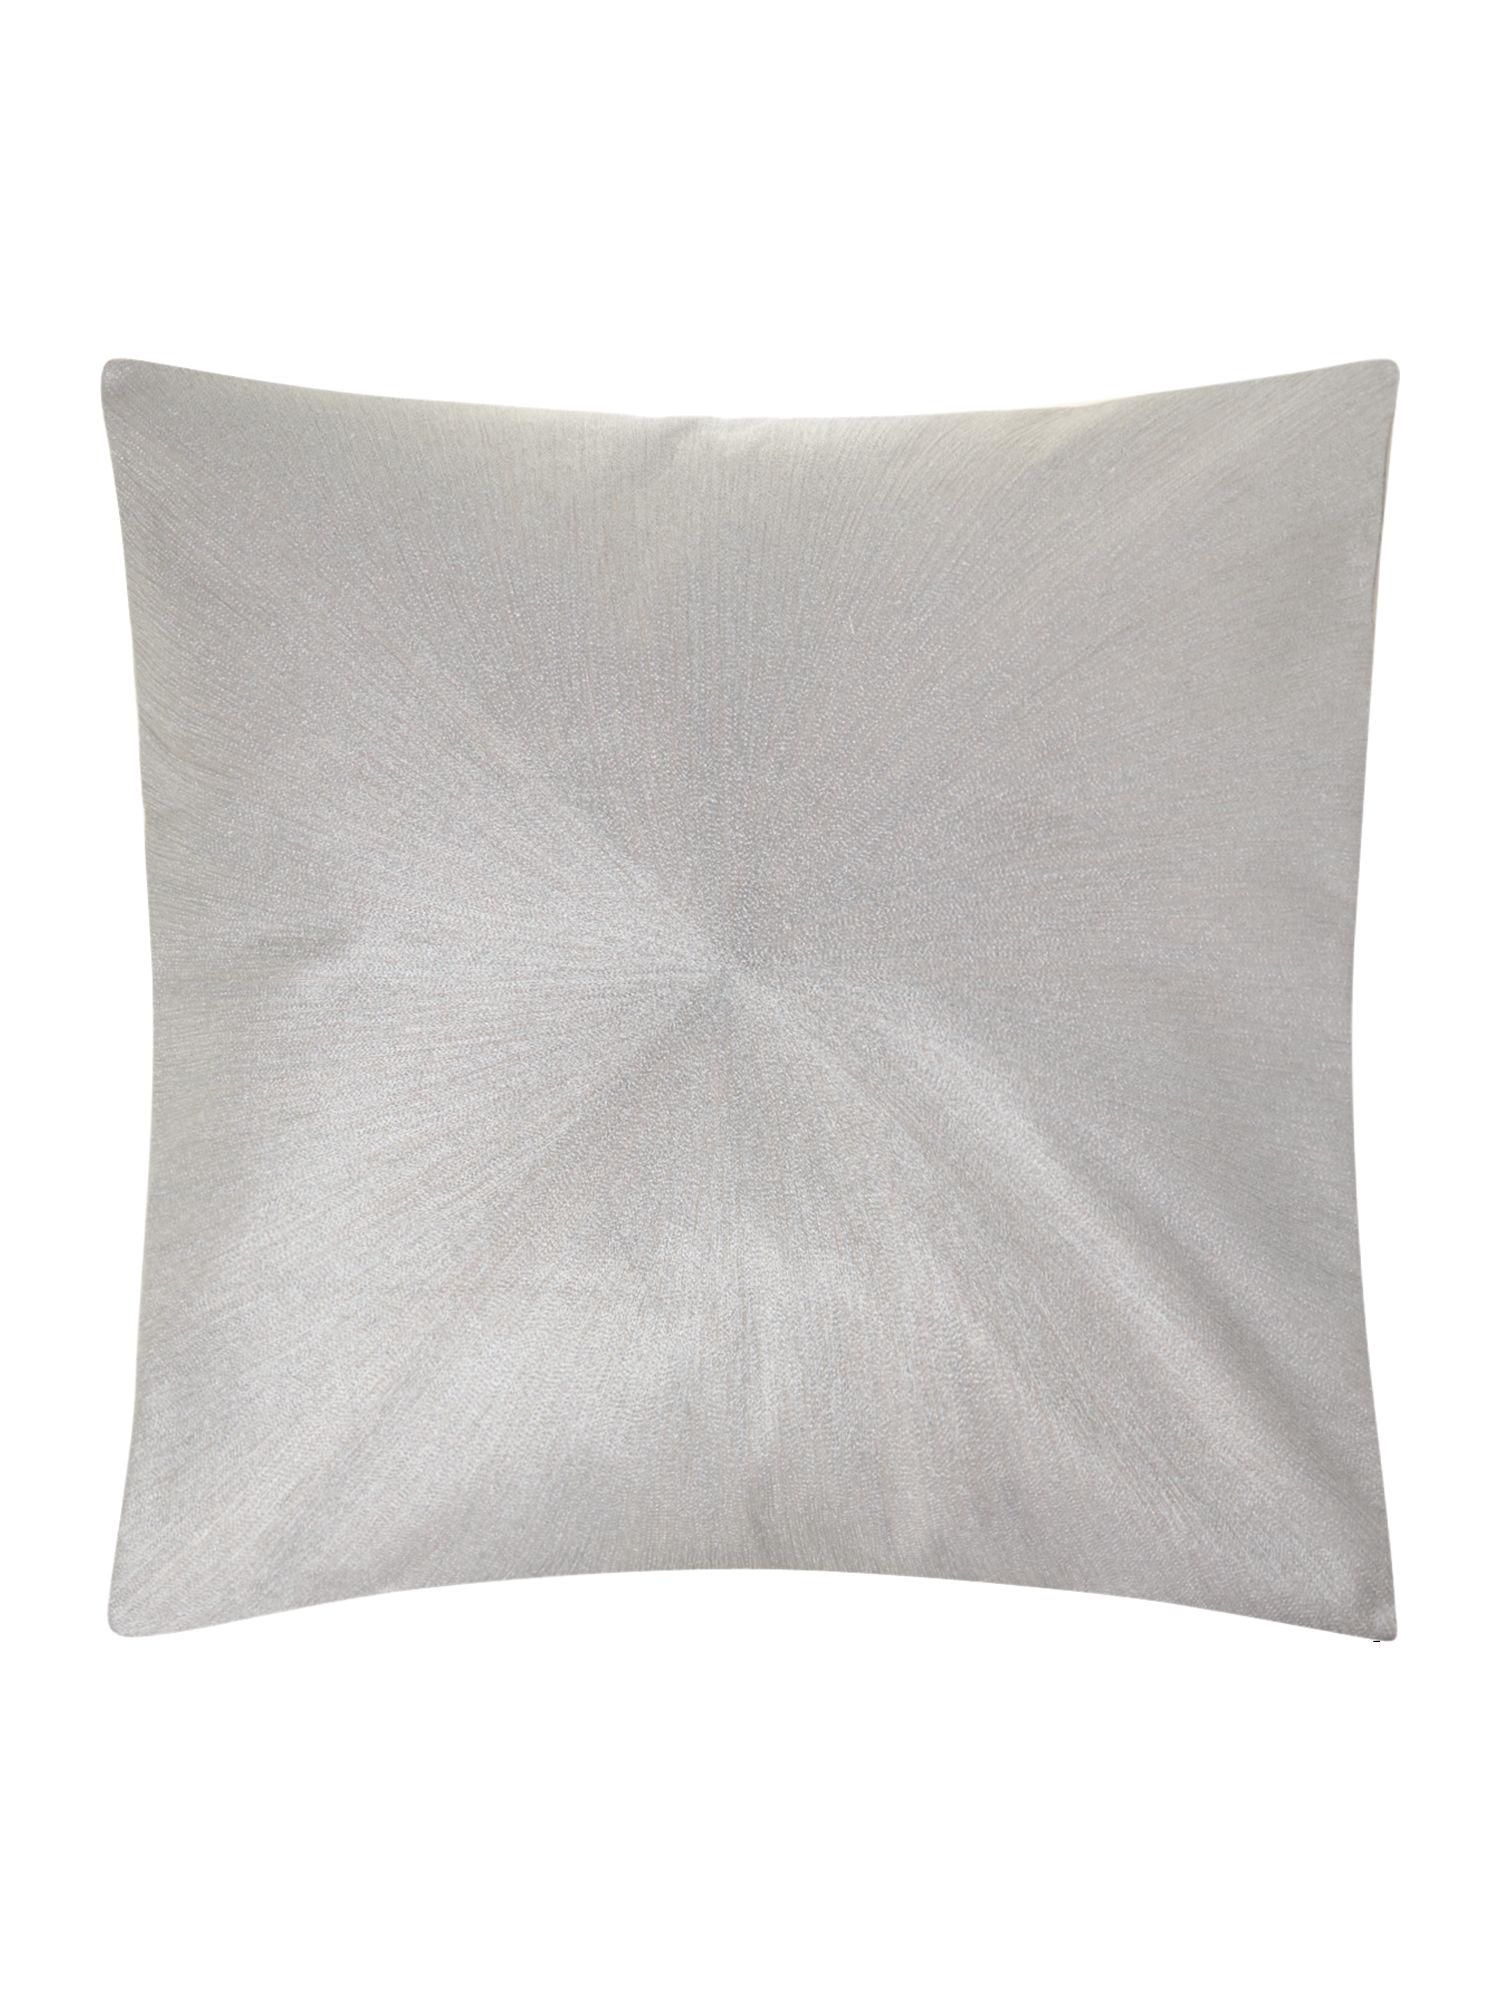 Lilac starburst cushion